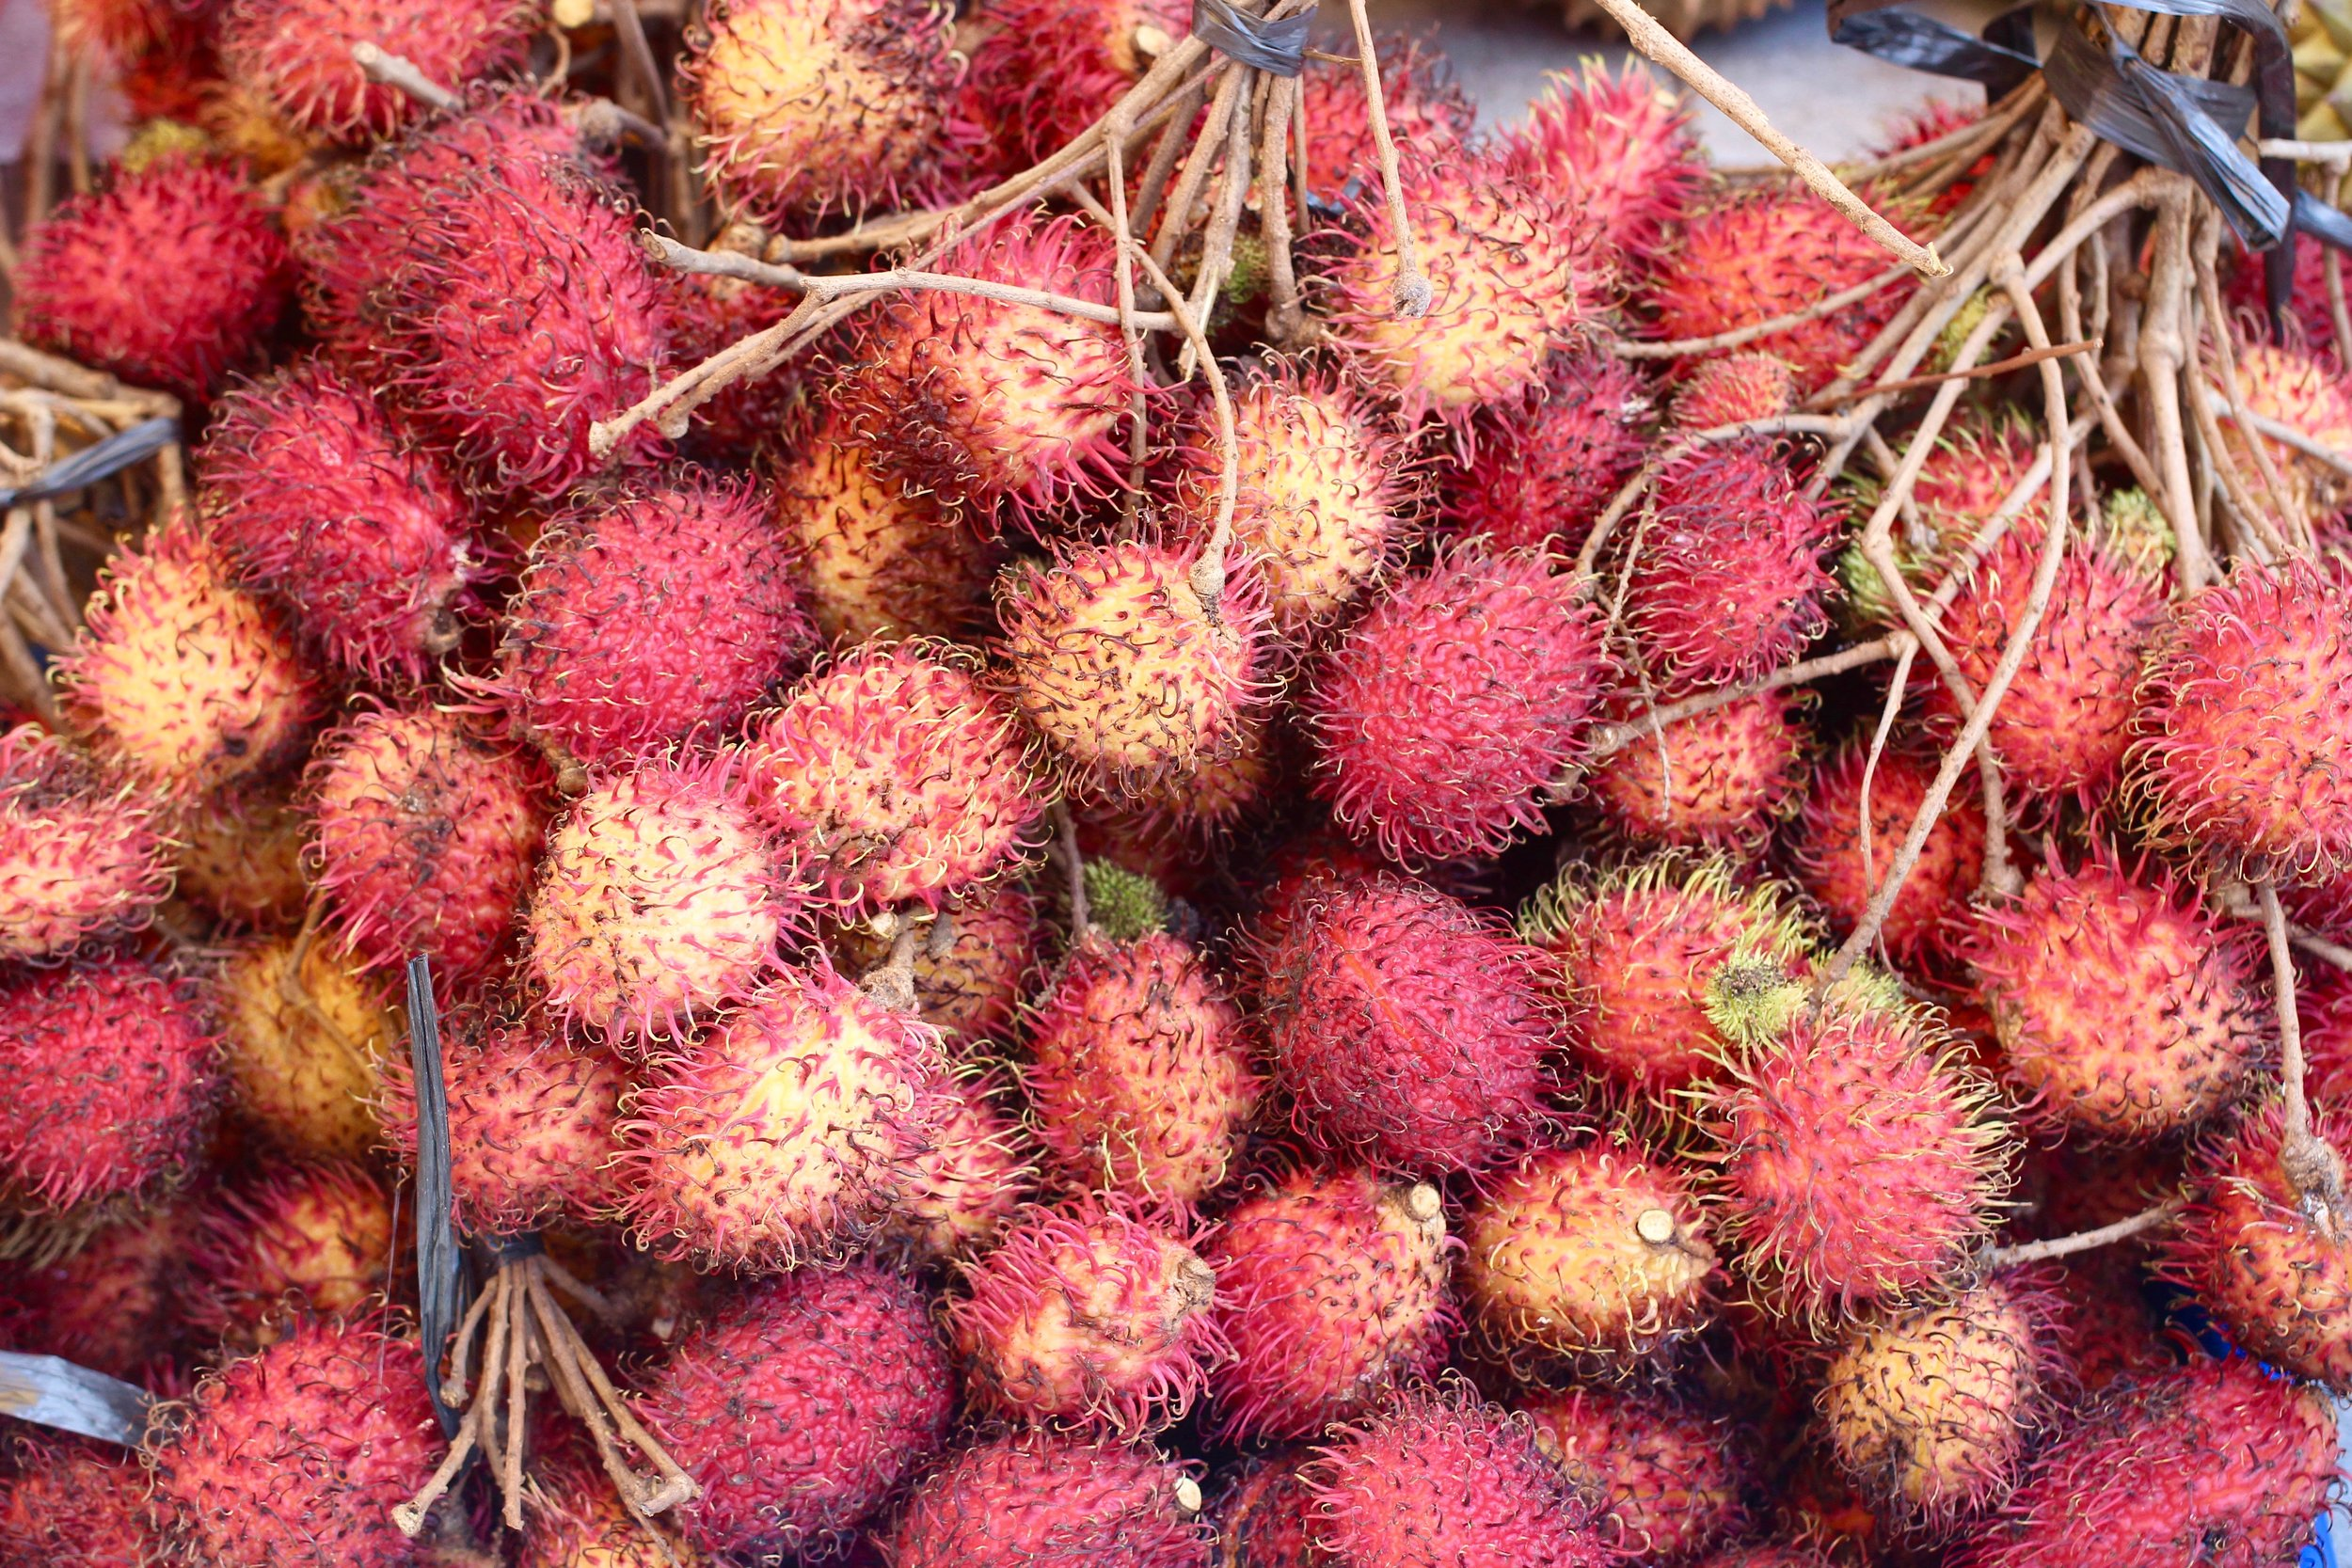 Rambutan break....these cost so much at Whole Foods back at home, but here on the streets, they're just a few cents. Tastes kinda like a lychee.